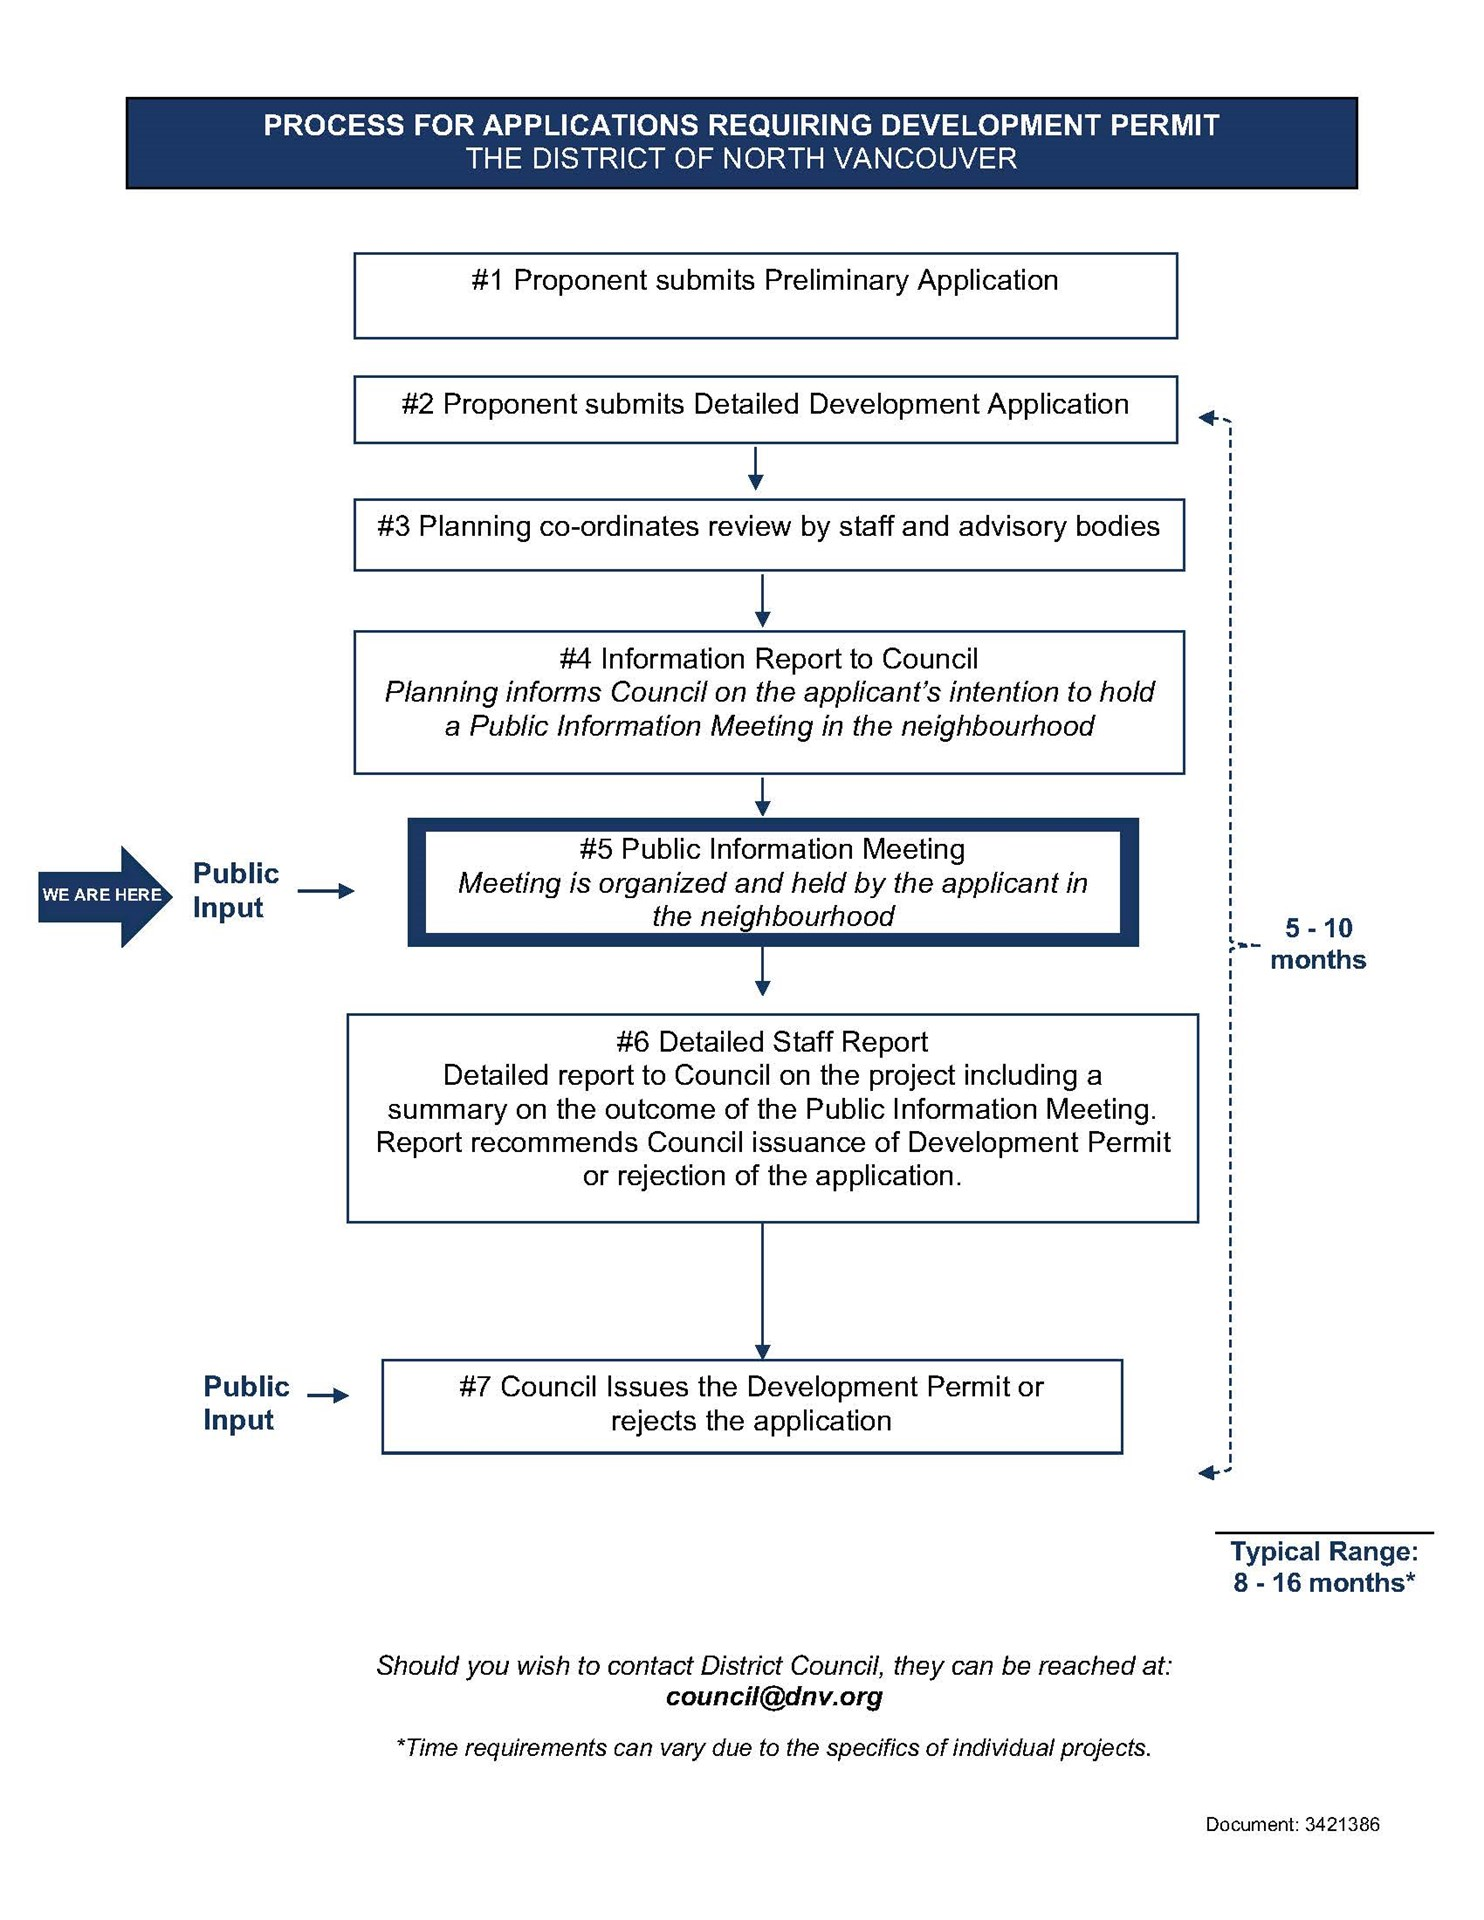 Development_Permit_Process_Flowchart.jpg